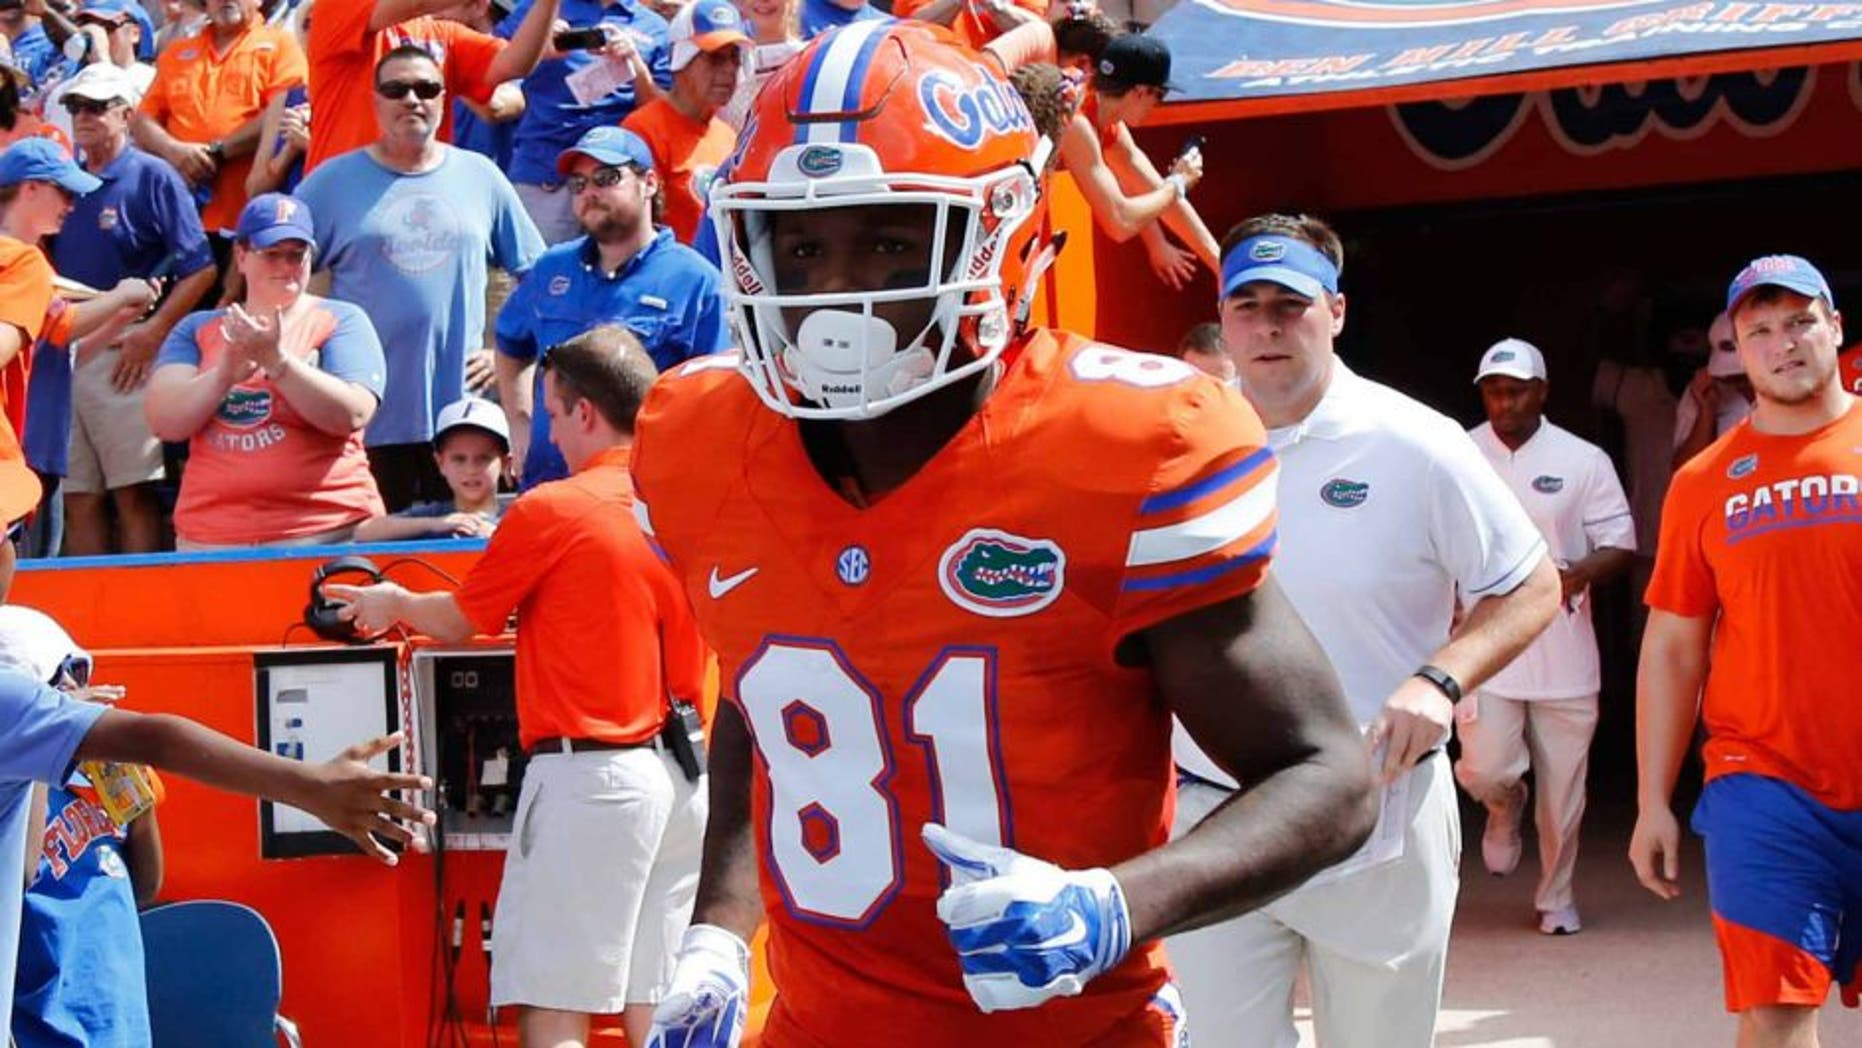 Sep 10, 2016; Gainesville, FL, USA; Florida Gators wide receiver Antonio Callaway (81) runs out onto the field before the game against the Kentucky Wildcats at Ben Hill Griffin Stadium. Mandatory Credit: Kim Klement-USA TODAY Sports